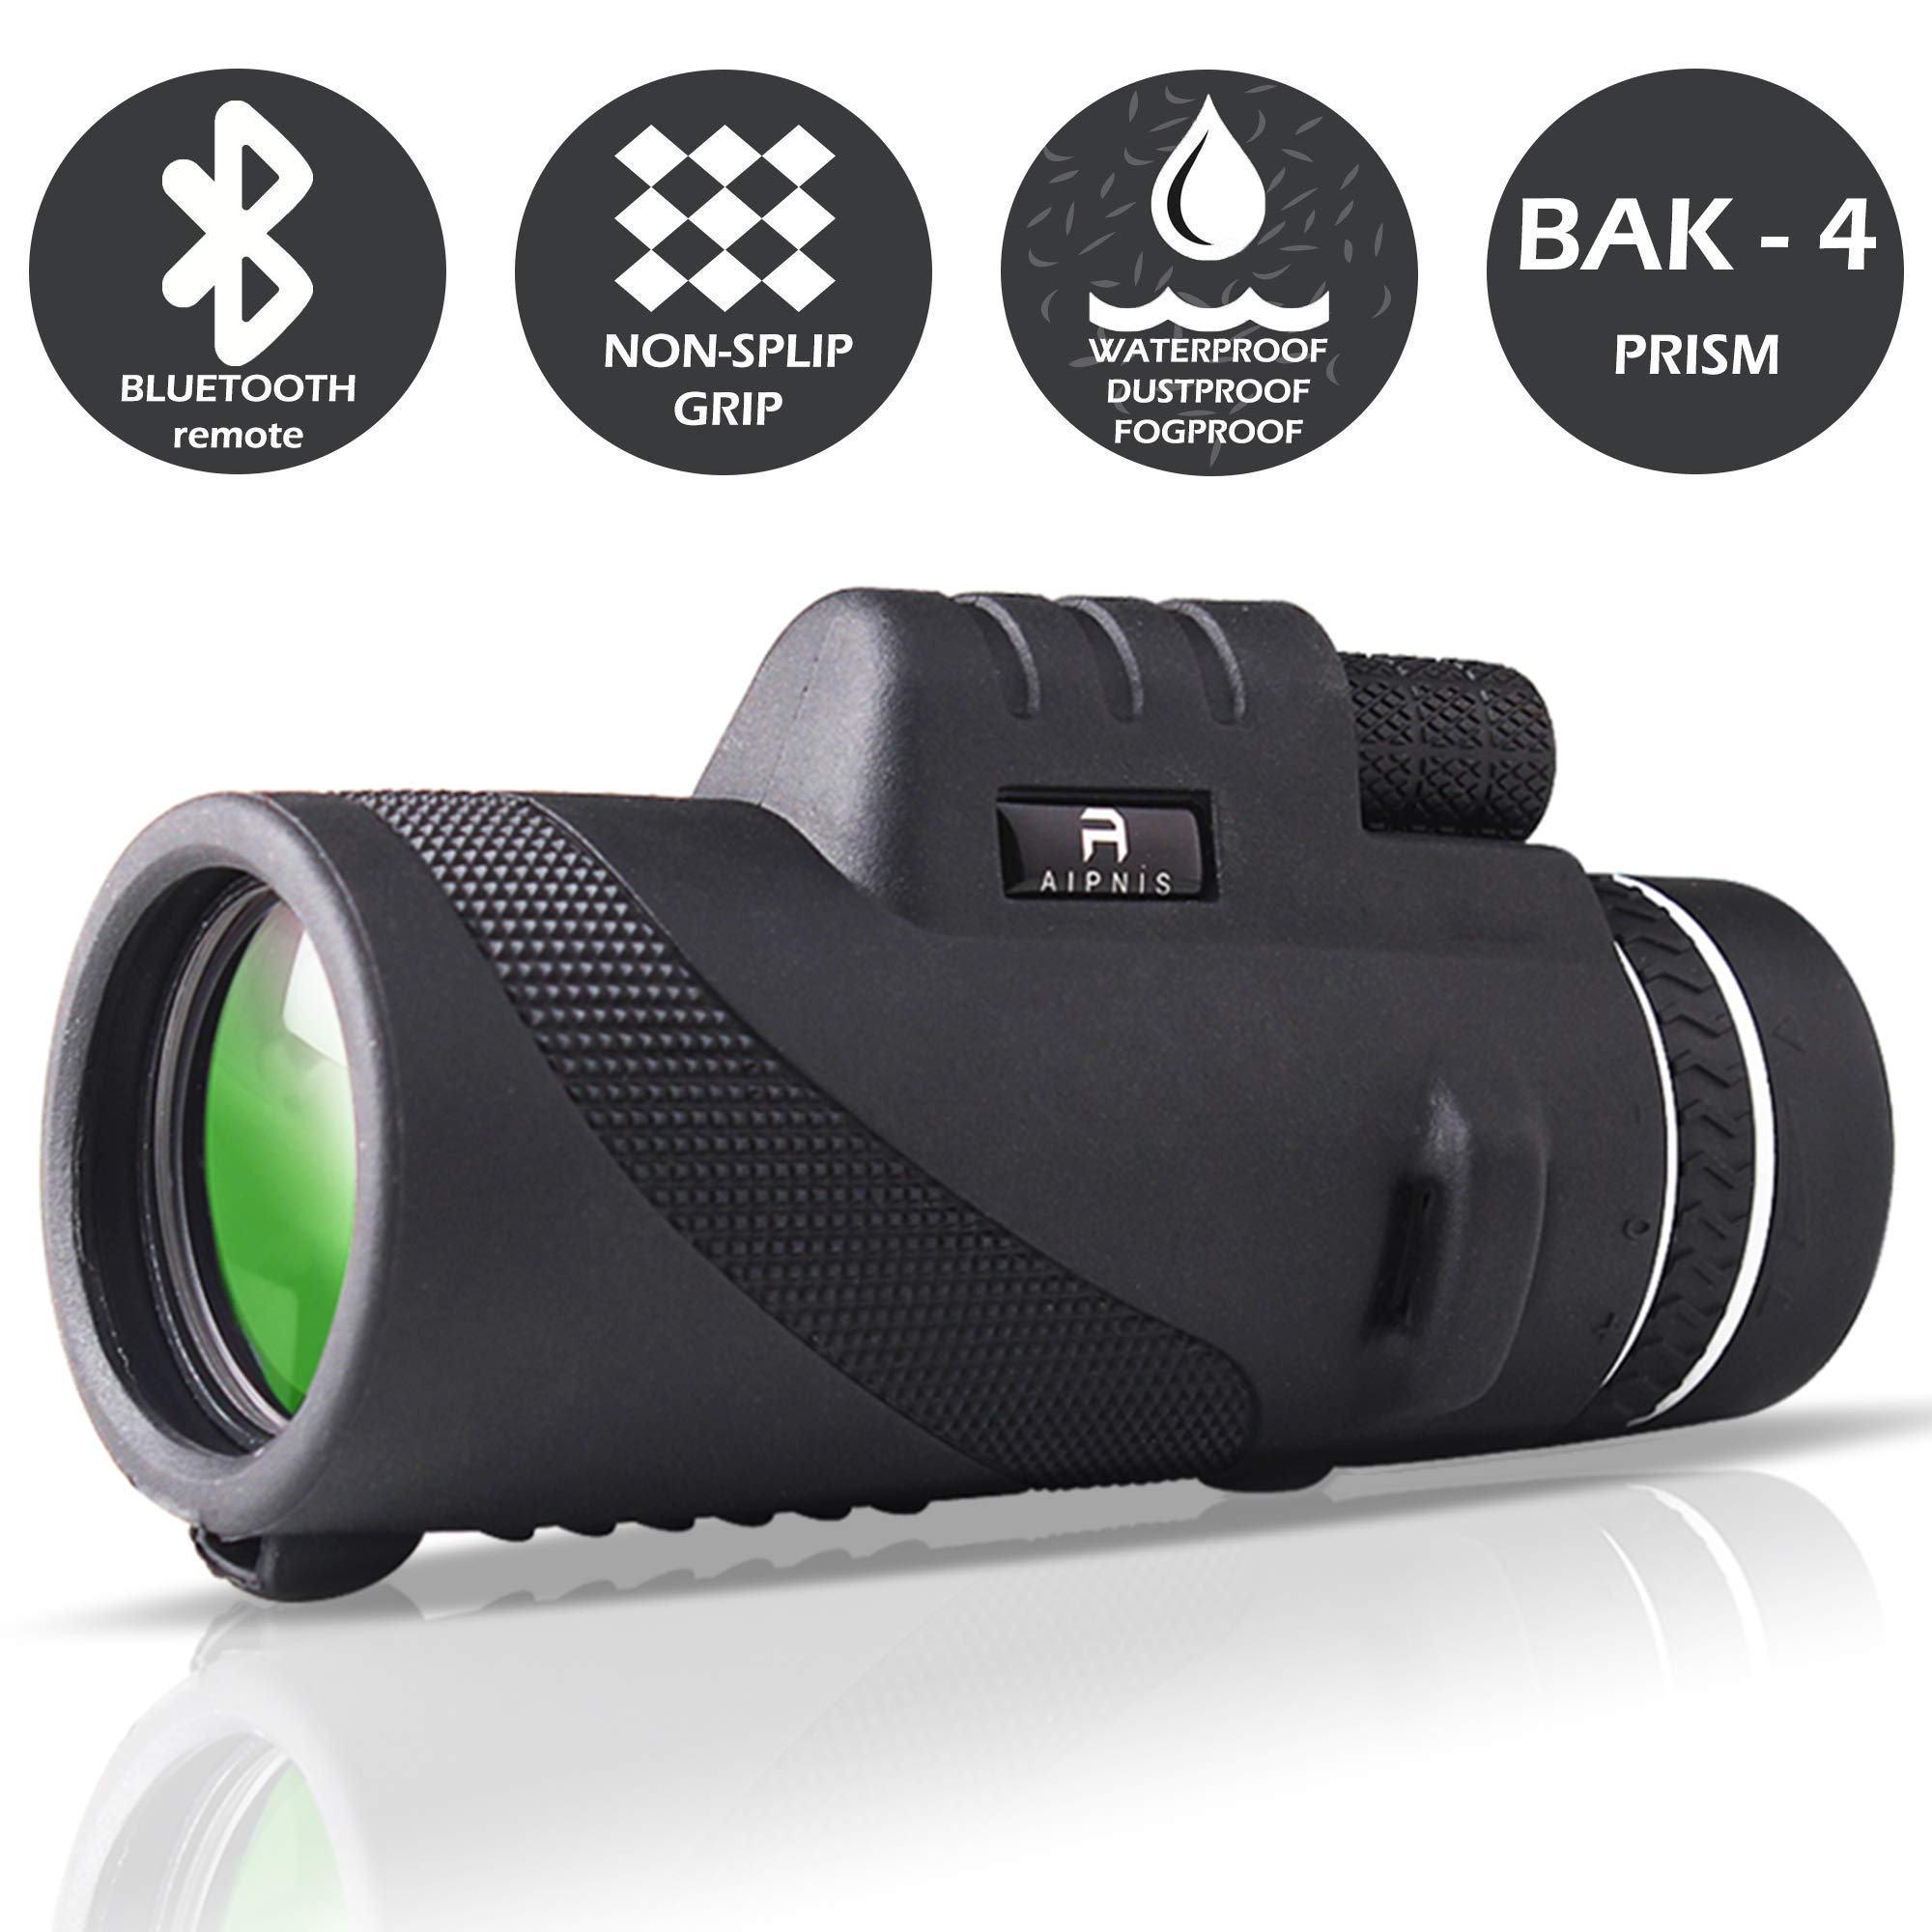 Monocular Telescope by AIPNIS - 12x50 HD Waterproof Shockproof Fog-proof Low Light Night Vision Scope with Smartphone Mount Adapter and Tripod - Bak4 Prism Fmc for Outdoor Bird Watching Hunting Hiking by AIPNIS